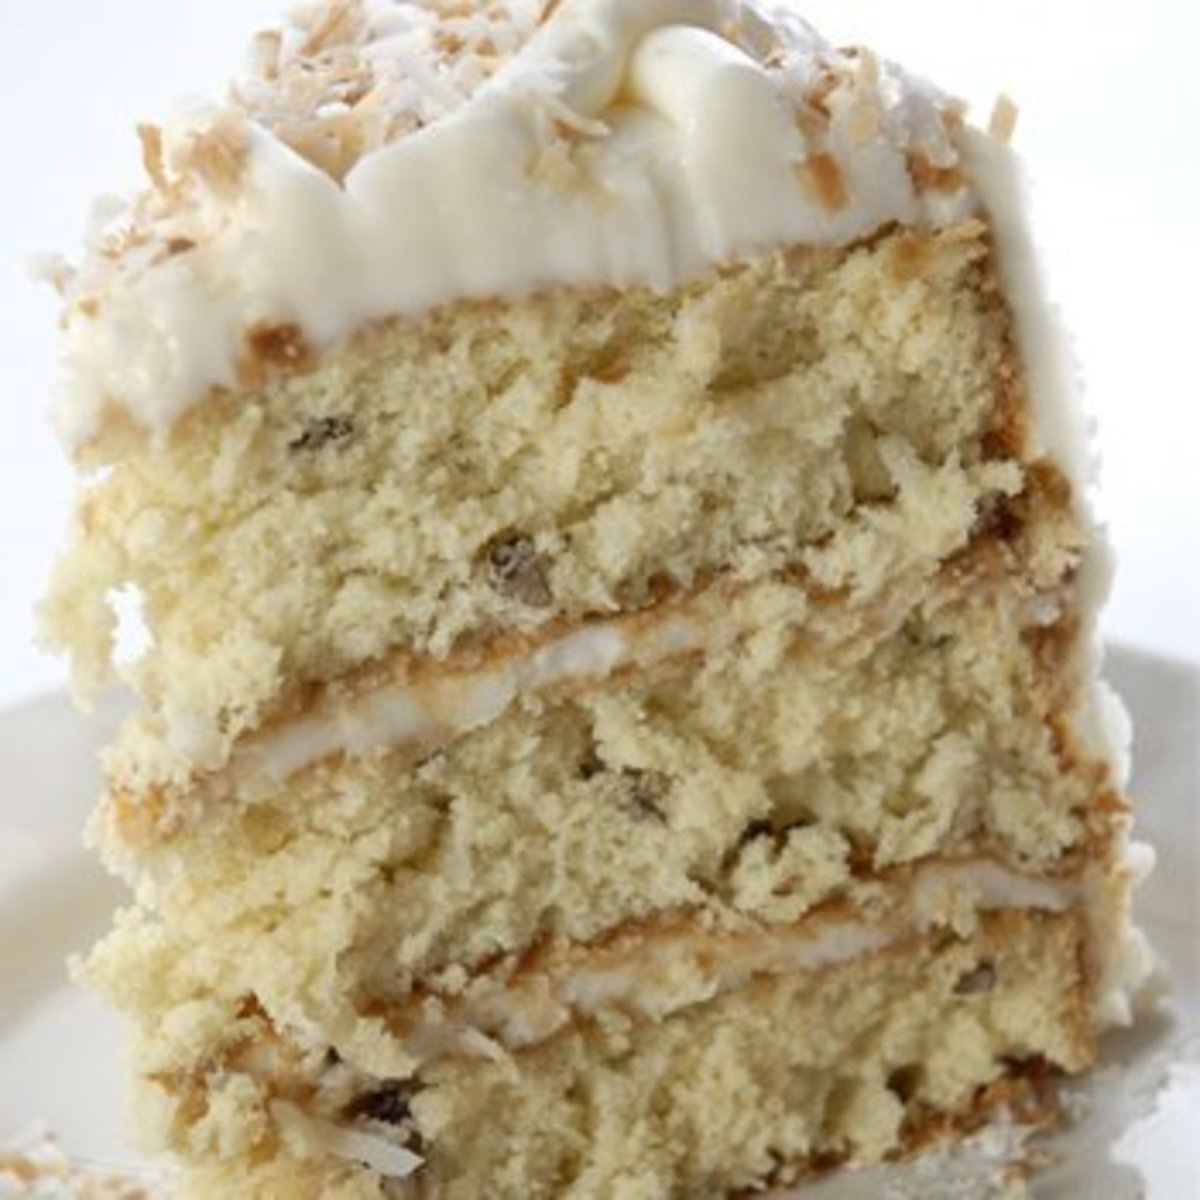 How to Make an Italian Cream Cake for a Special Occasion